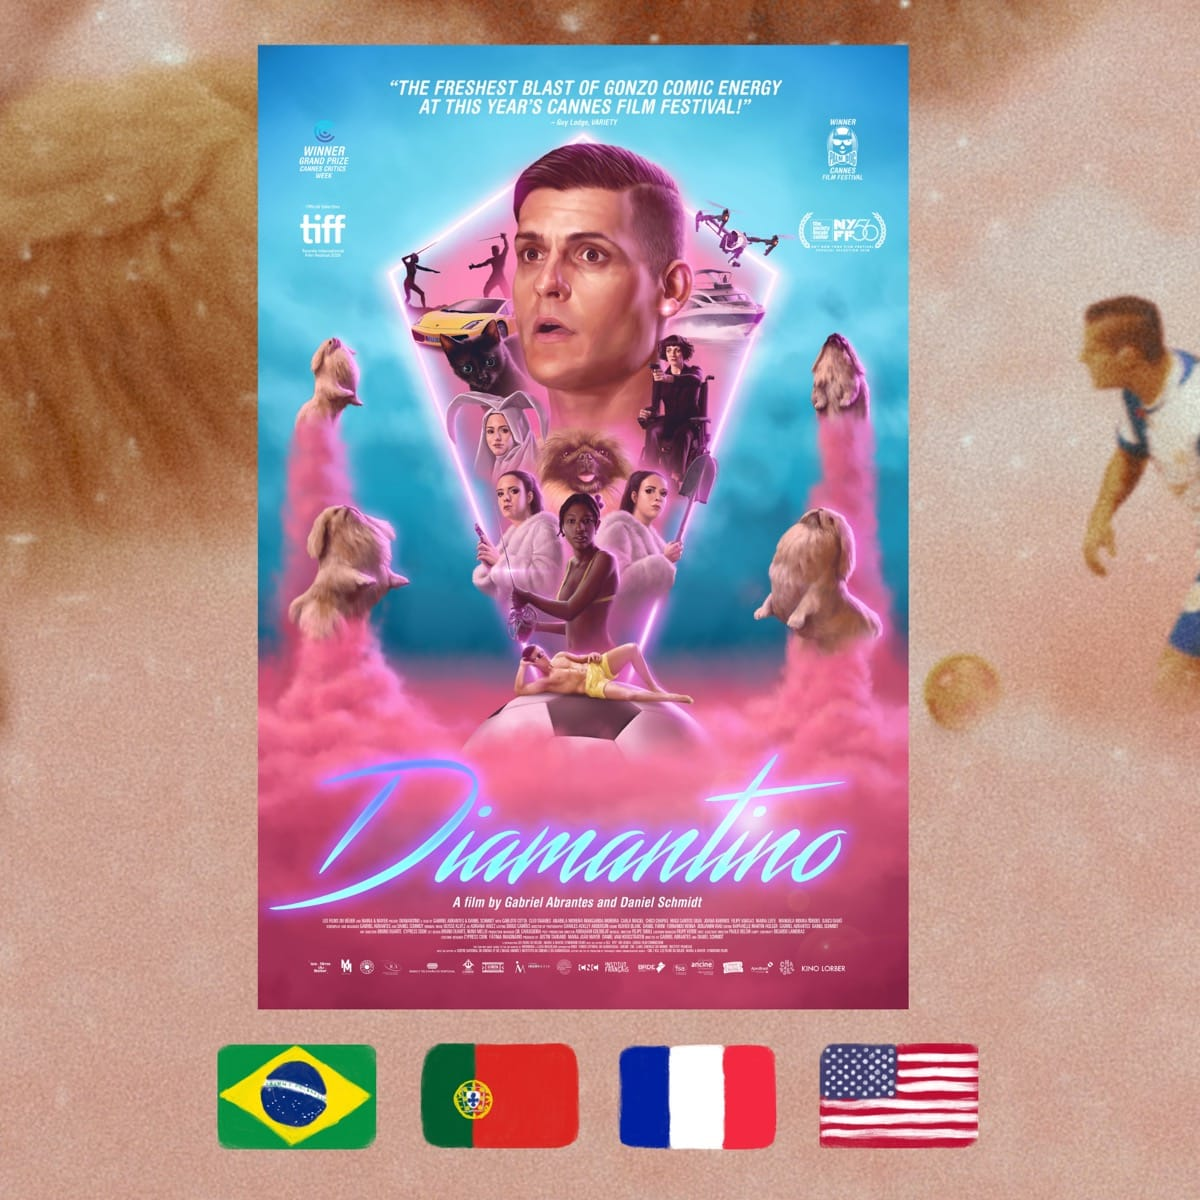 Diamantino, Gabriel Abrantes, Daniel Schmidt, movie poster